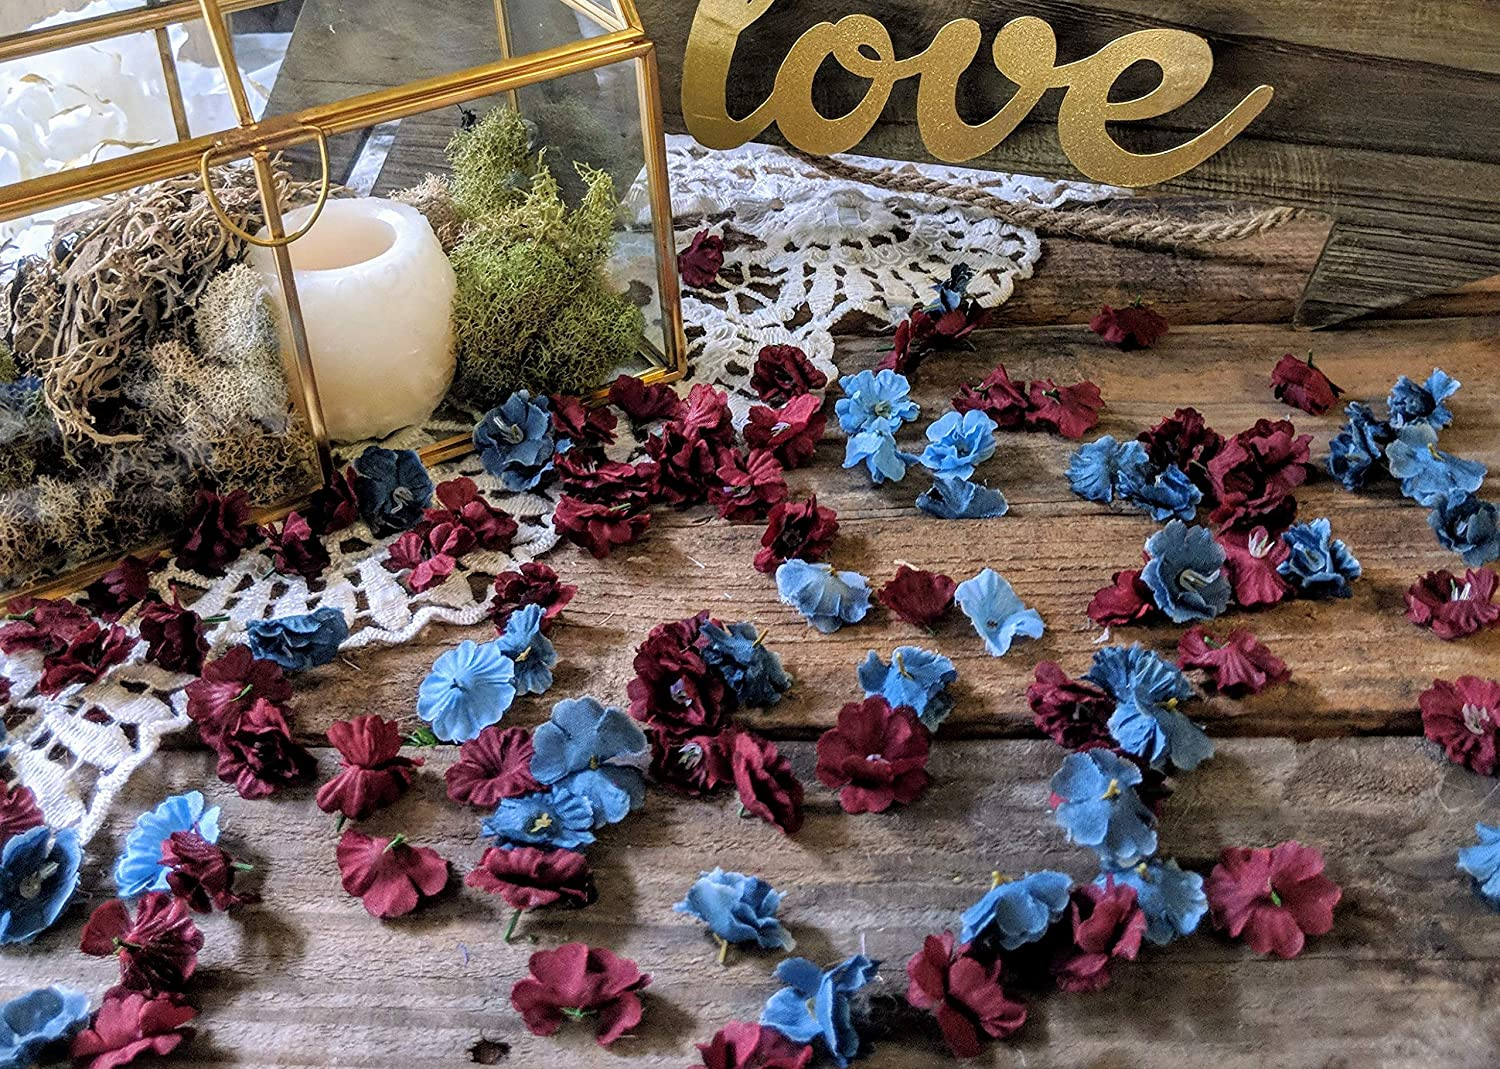 Wedding Table Decorations for Reception, Table Scatter Decorations, Dusty Blue and Burgundy Flower Confetti, Floral Bridal Shower Decor